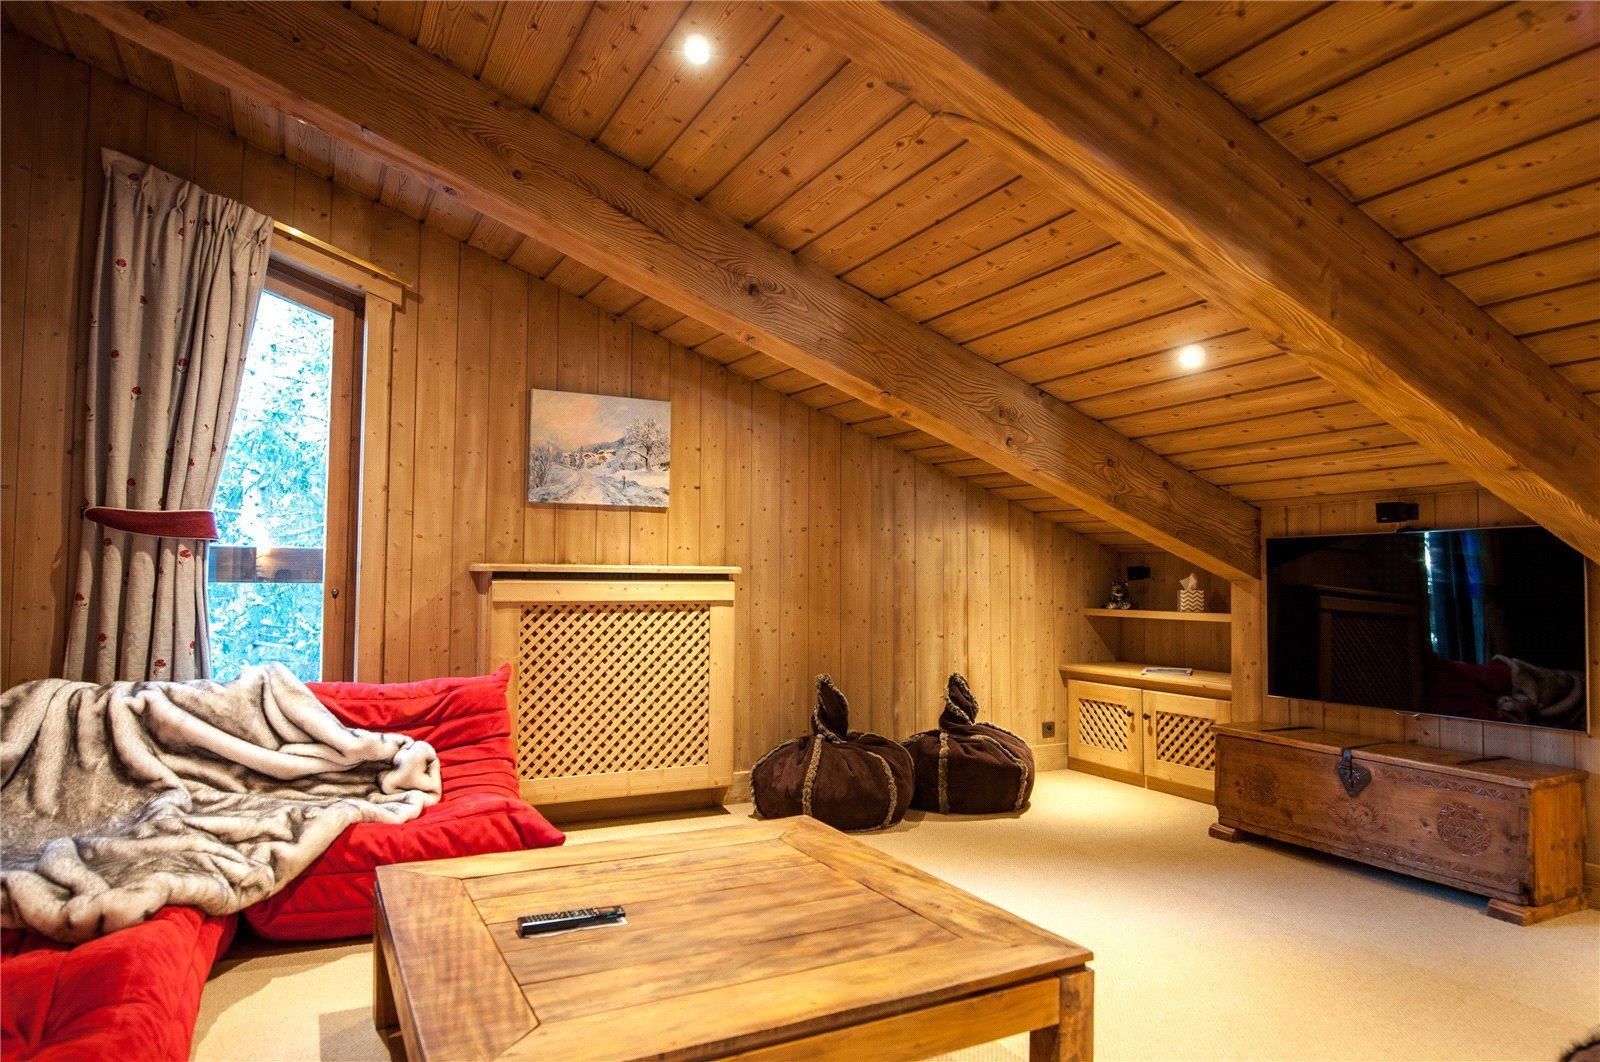 Buying Villa Courchevel Traditional and sought-after chalet featuring 7 bedrooms, spacious accommodation, a spa and direct access to the ski slopes of Courchevel 1850.